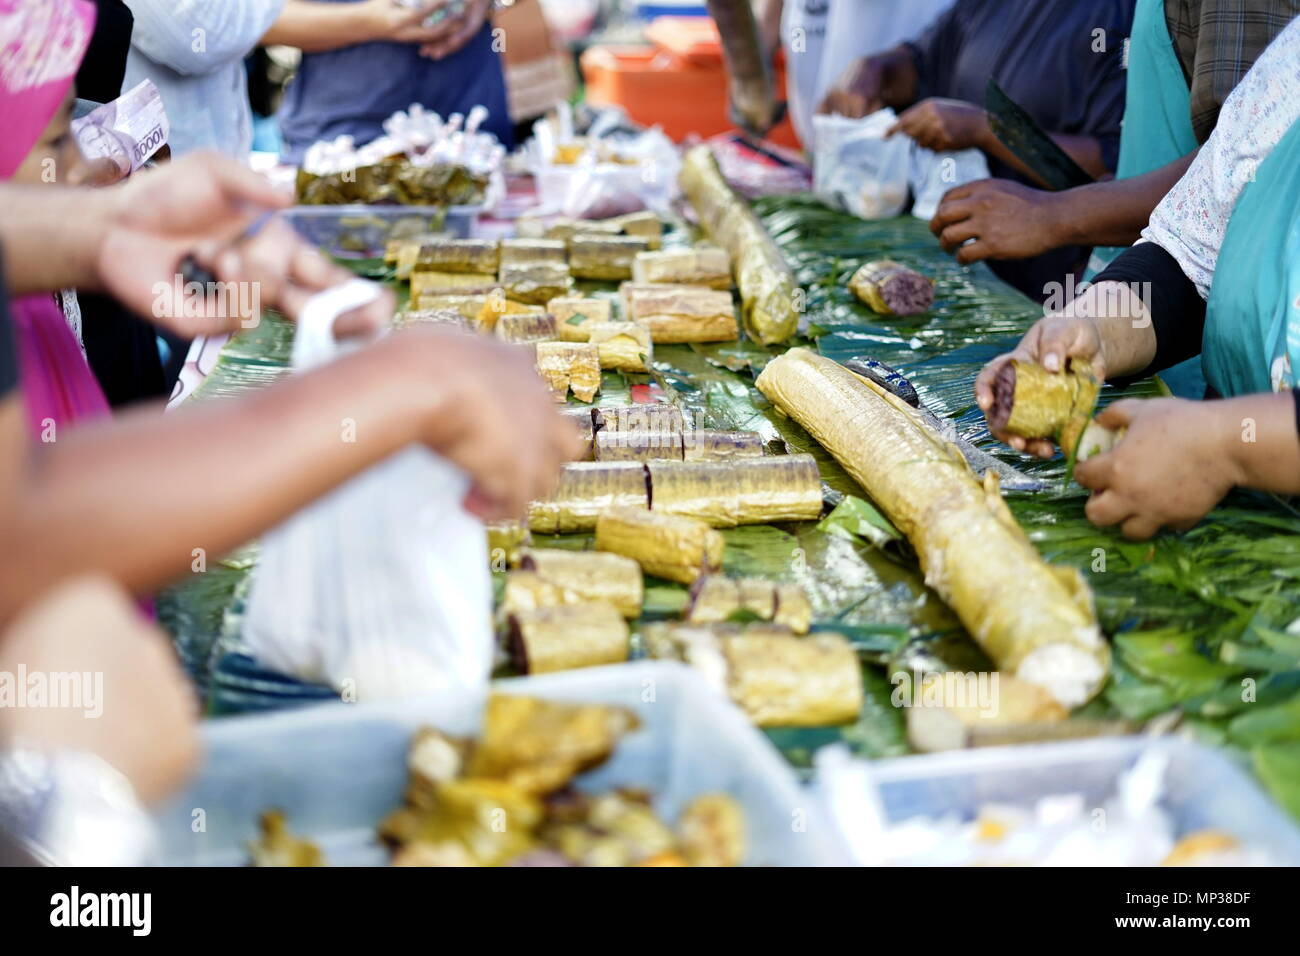 People buying Sticky Rice desserts in street food market during ramadan fasting month at Banda Aceh City, Aceh Province, Indonesia - Stock Image